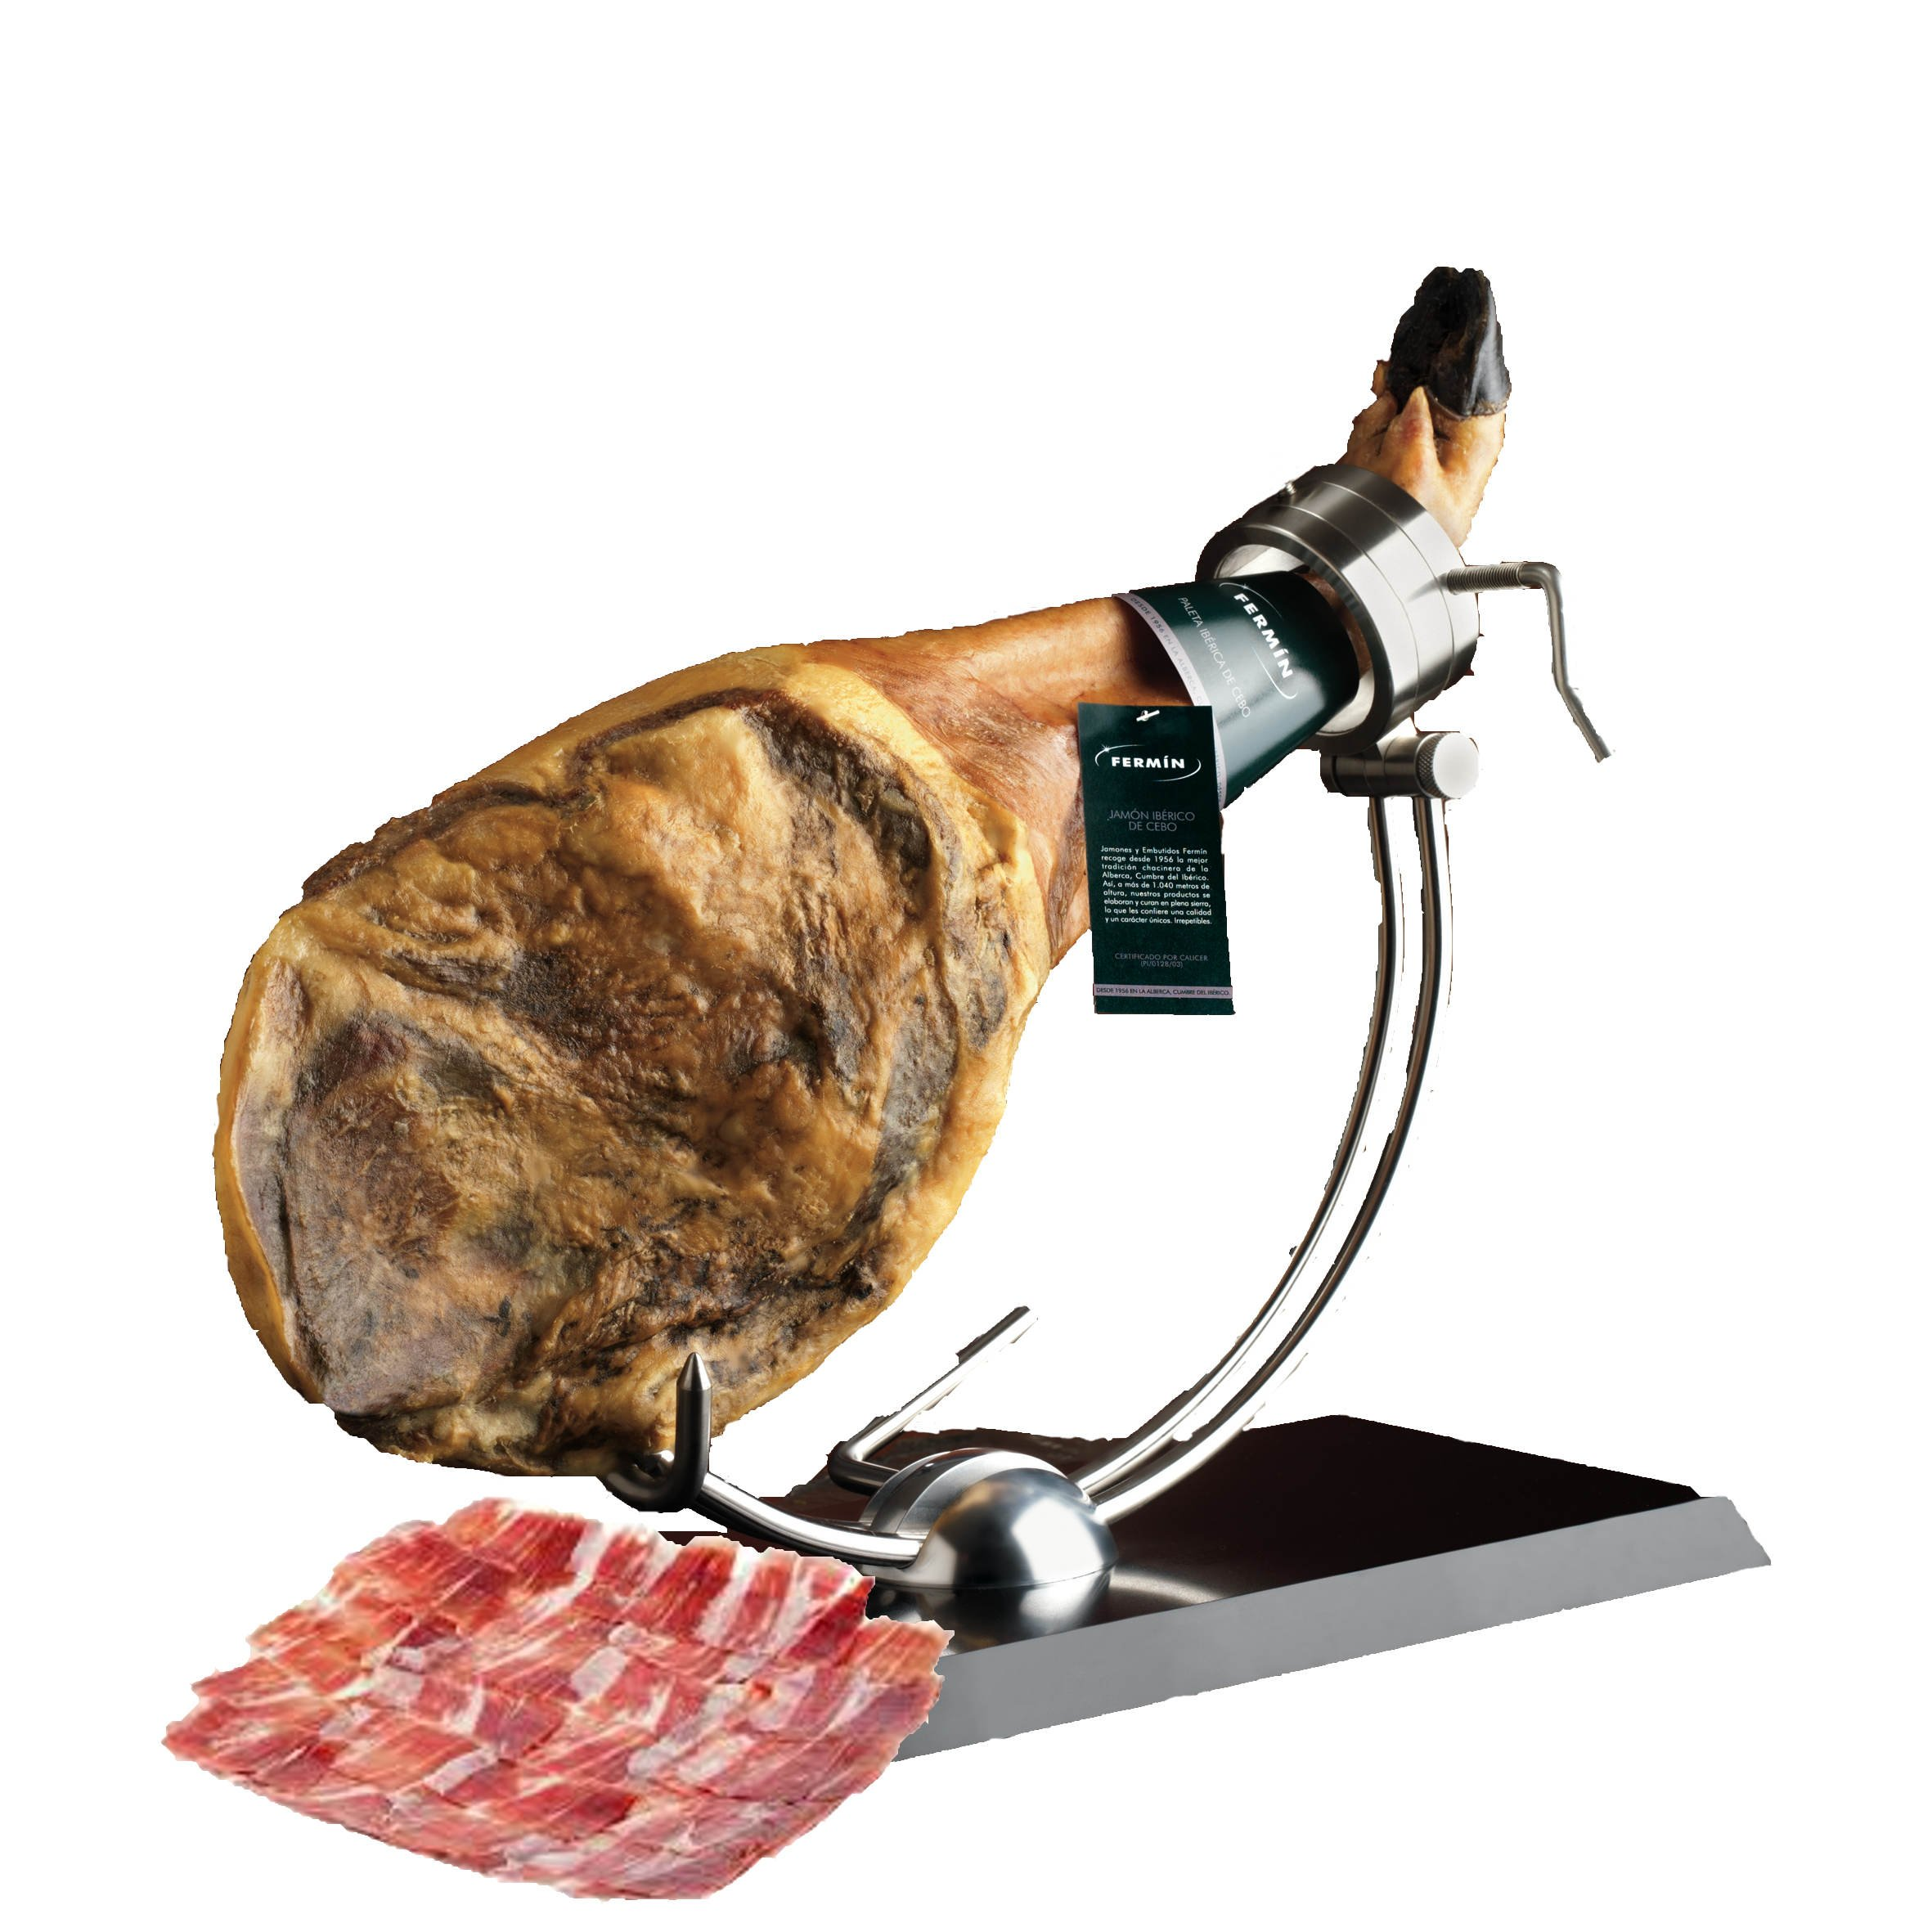 Iberico Ham de Bellota Leg Cured for 24 Months, Between 20-25 Servings, 10-12 lbs from Fermin Plus Ham Holder and Iberico Ham Knife… by Fermin (Image #1)